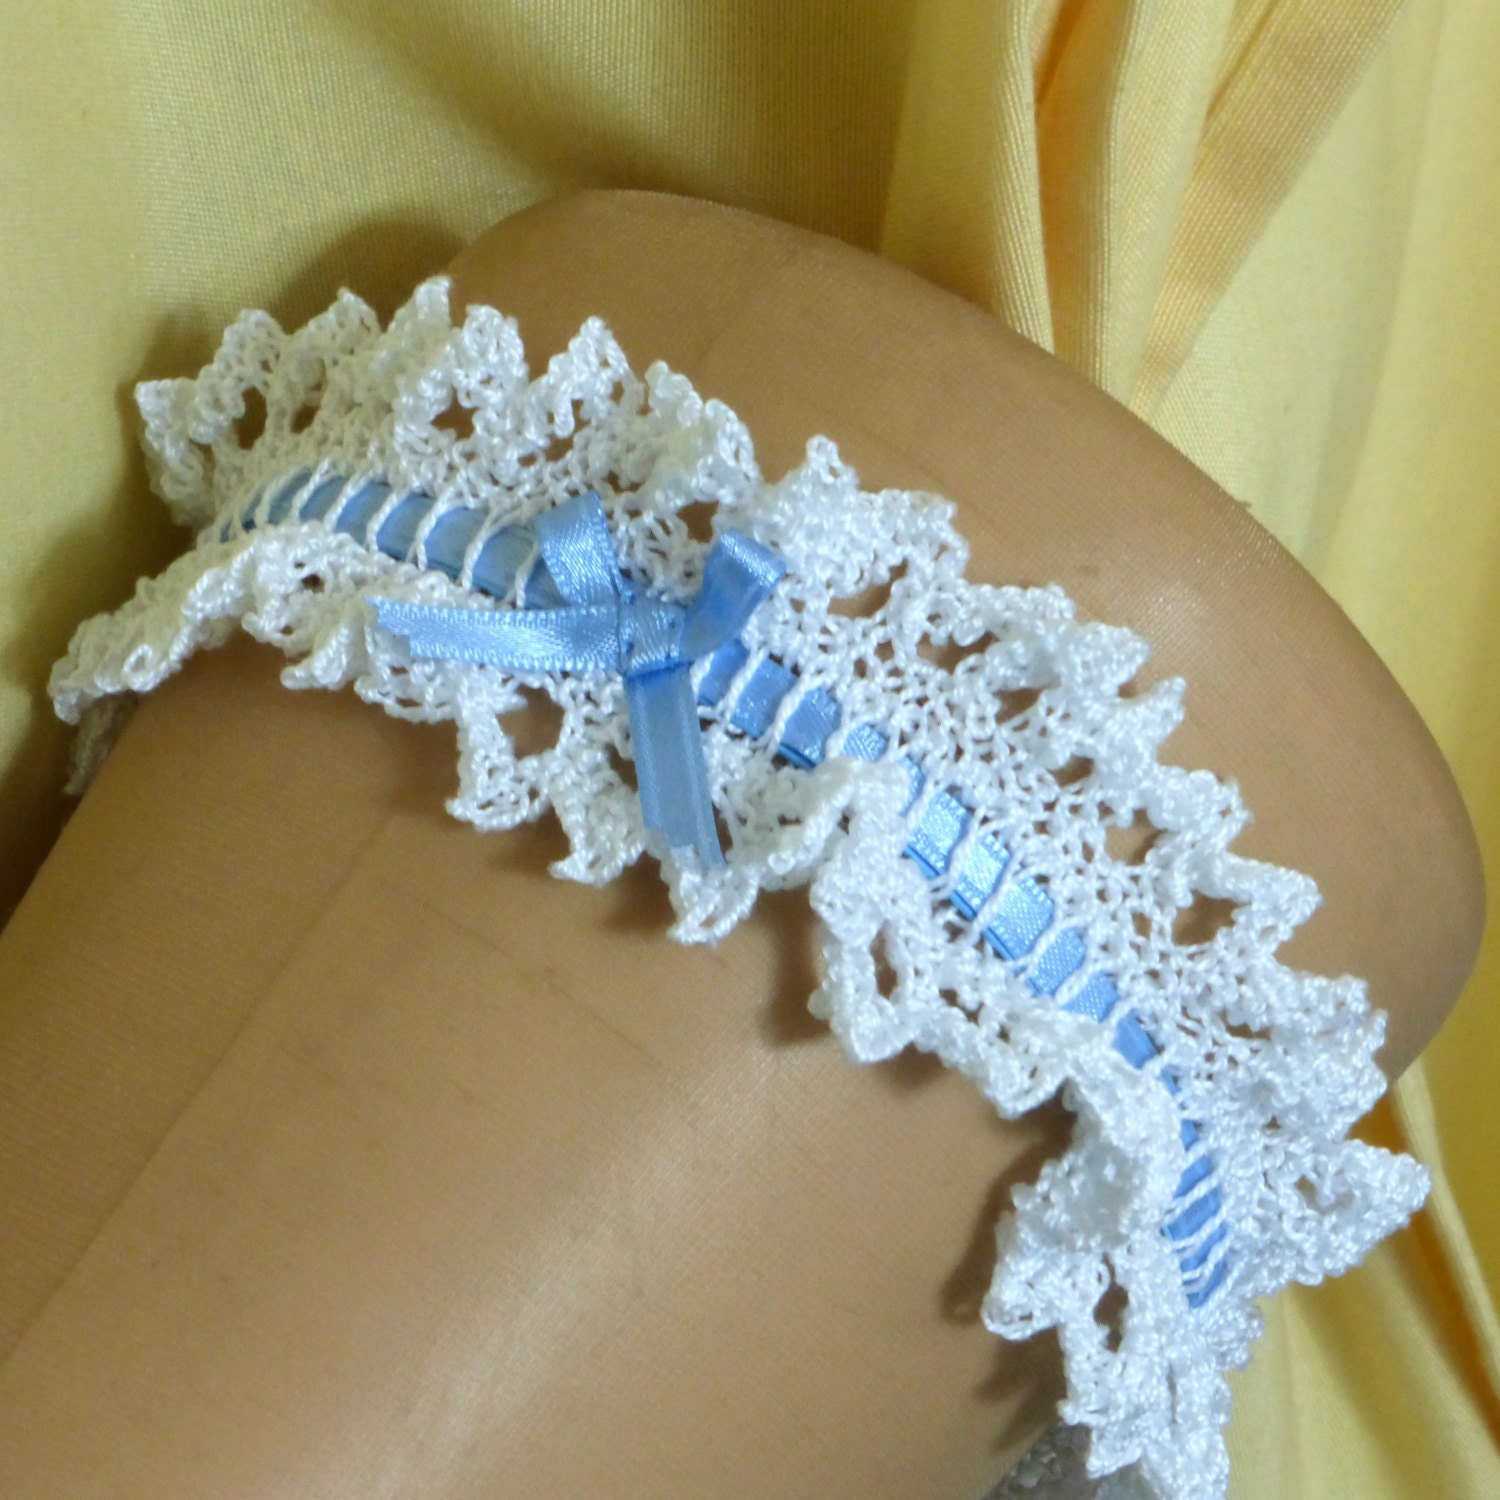 Crochet Wedding Garter: Instant Download Knitting Pattern Wedding Garter For By Dycas